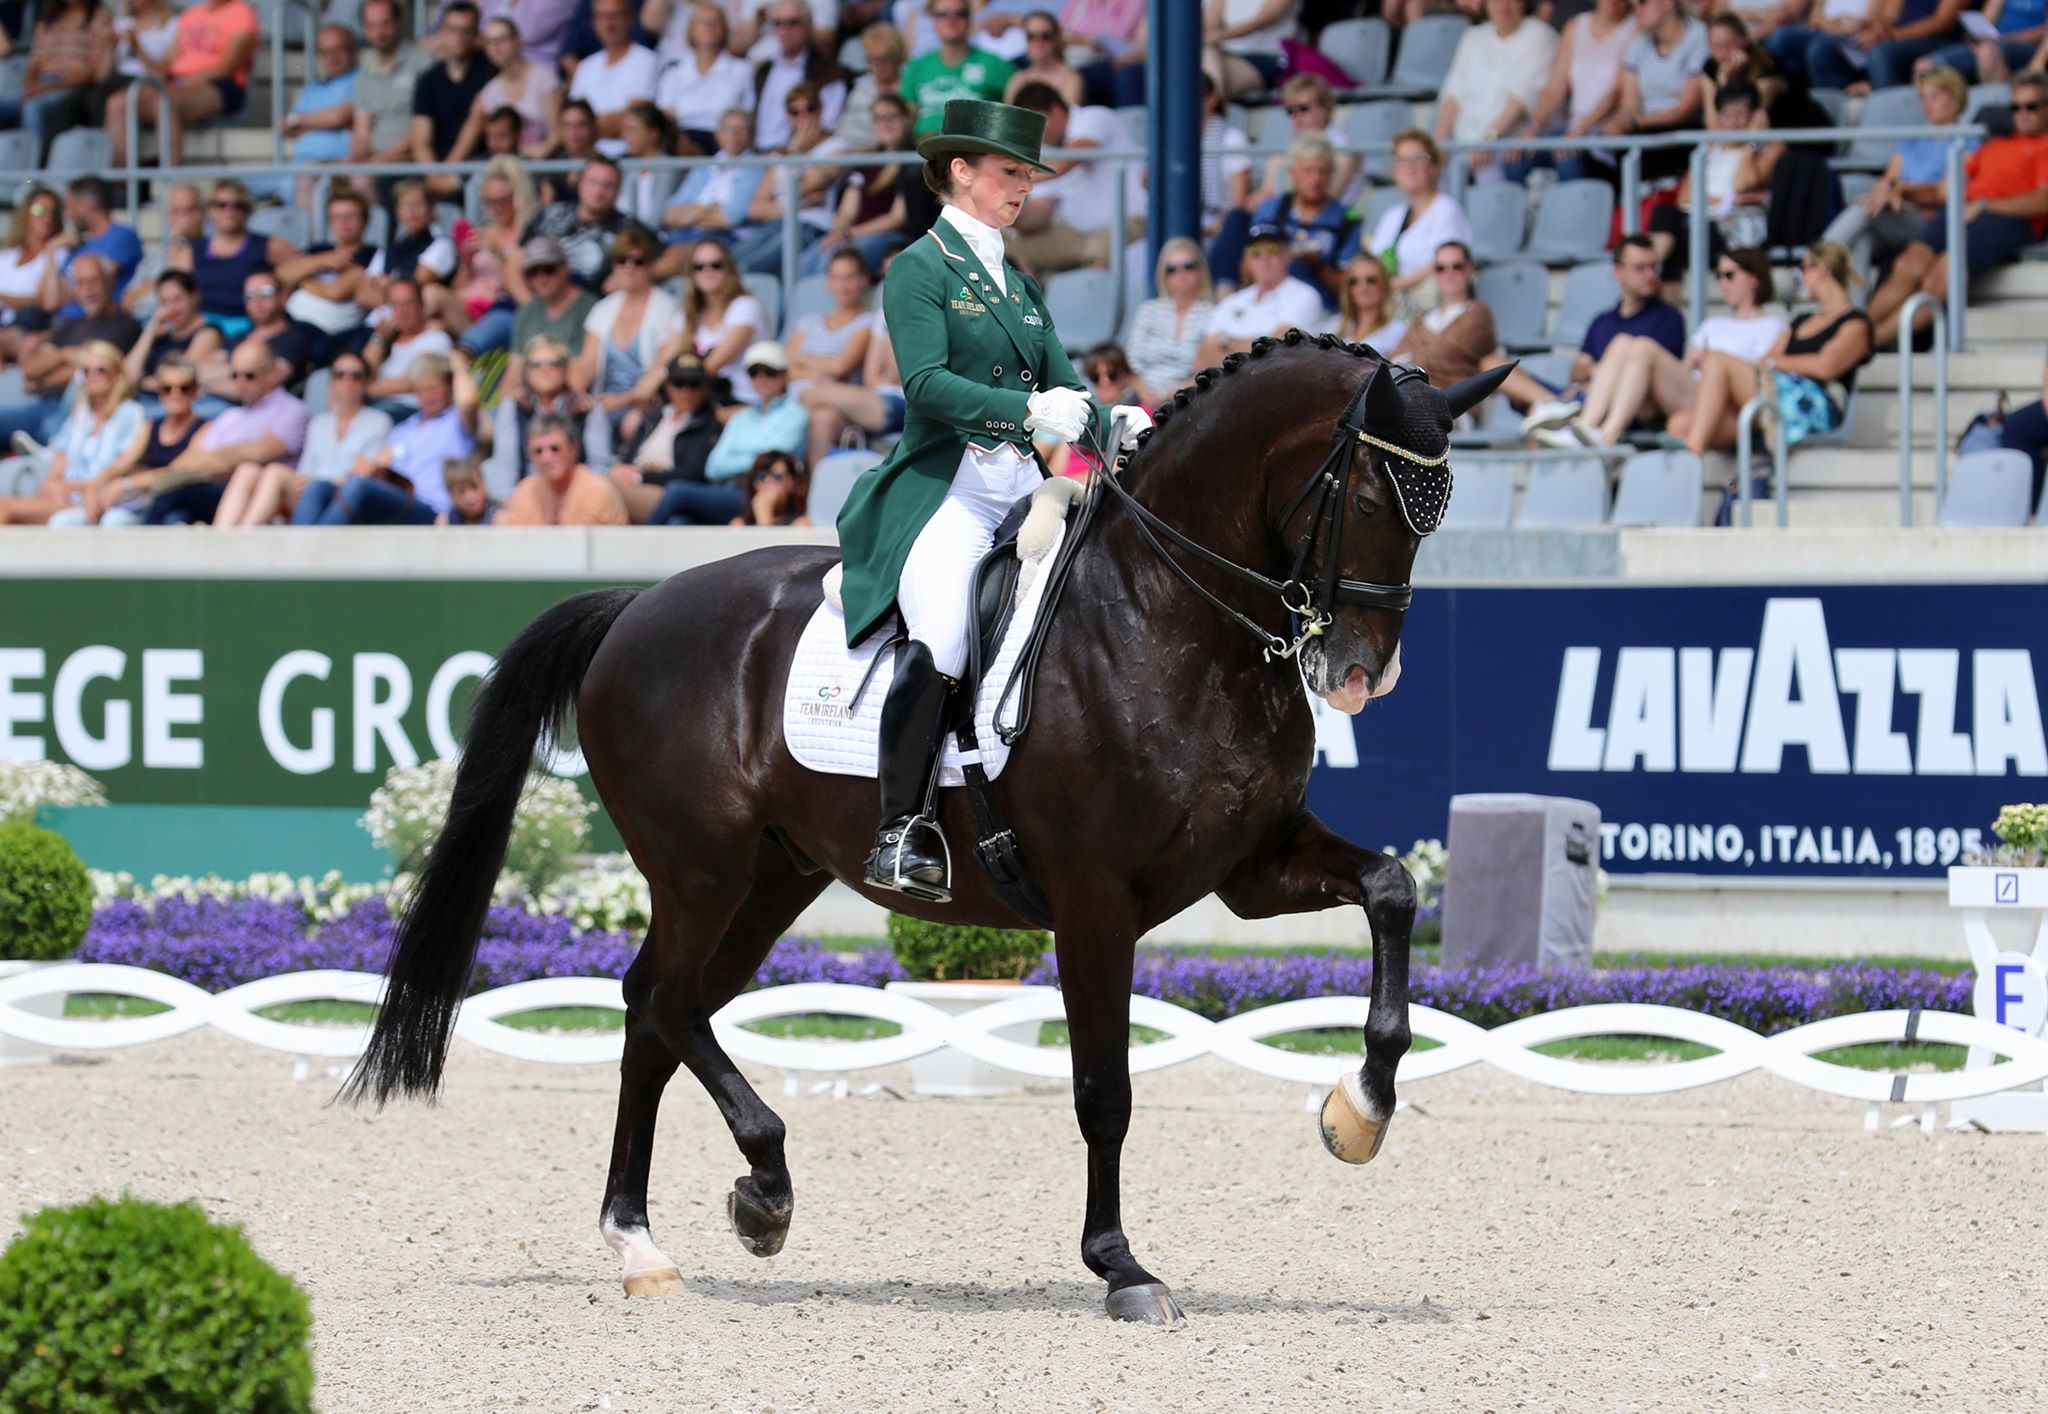 Judy Reynolds smashes Irish record again on way to brilliant fifth place finish in Grand Prix Special at European Championships, Gold for Isabell Werth